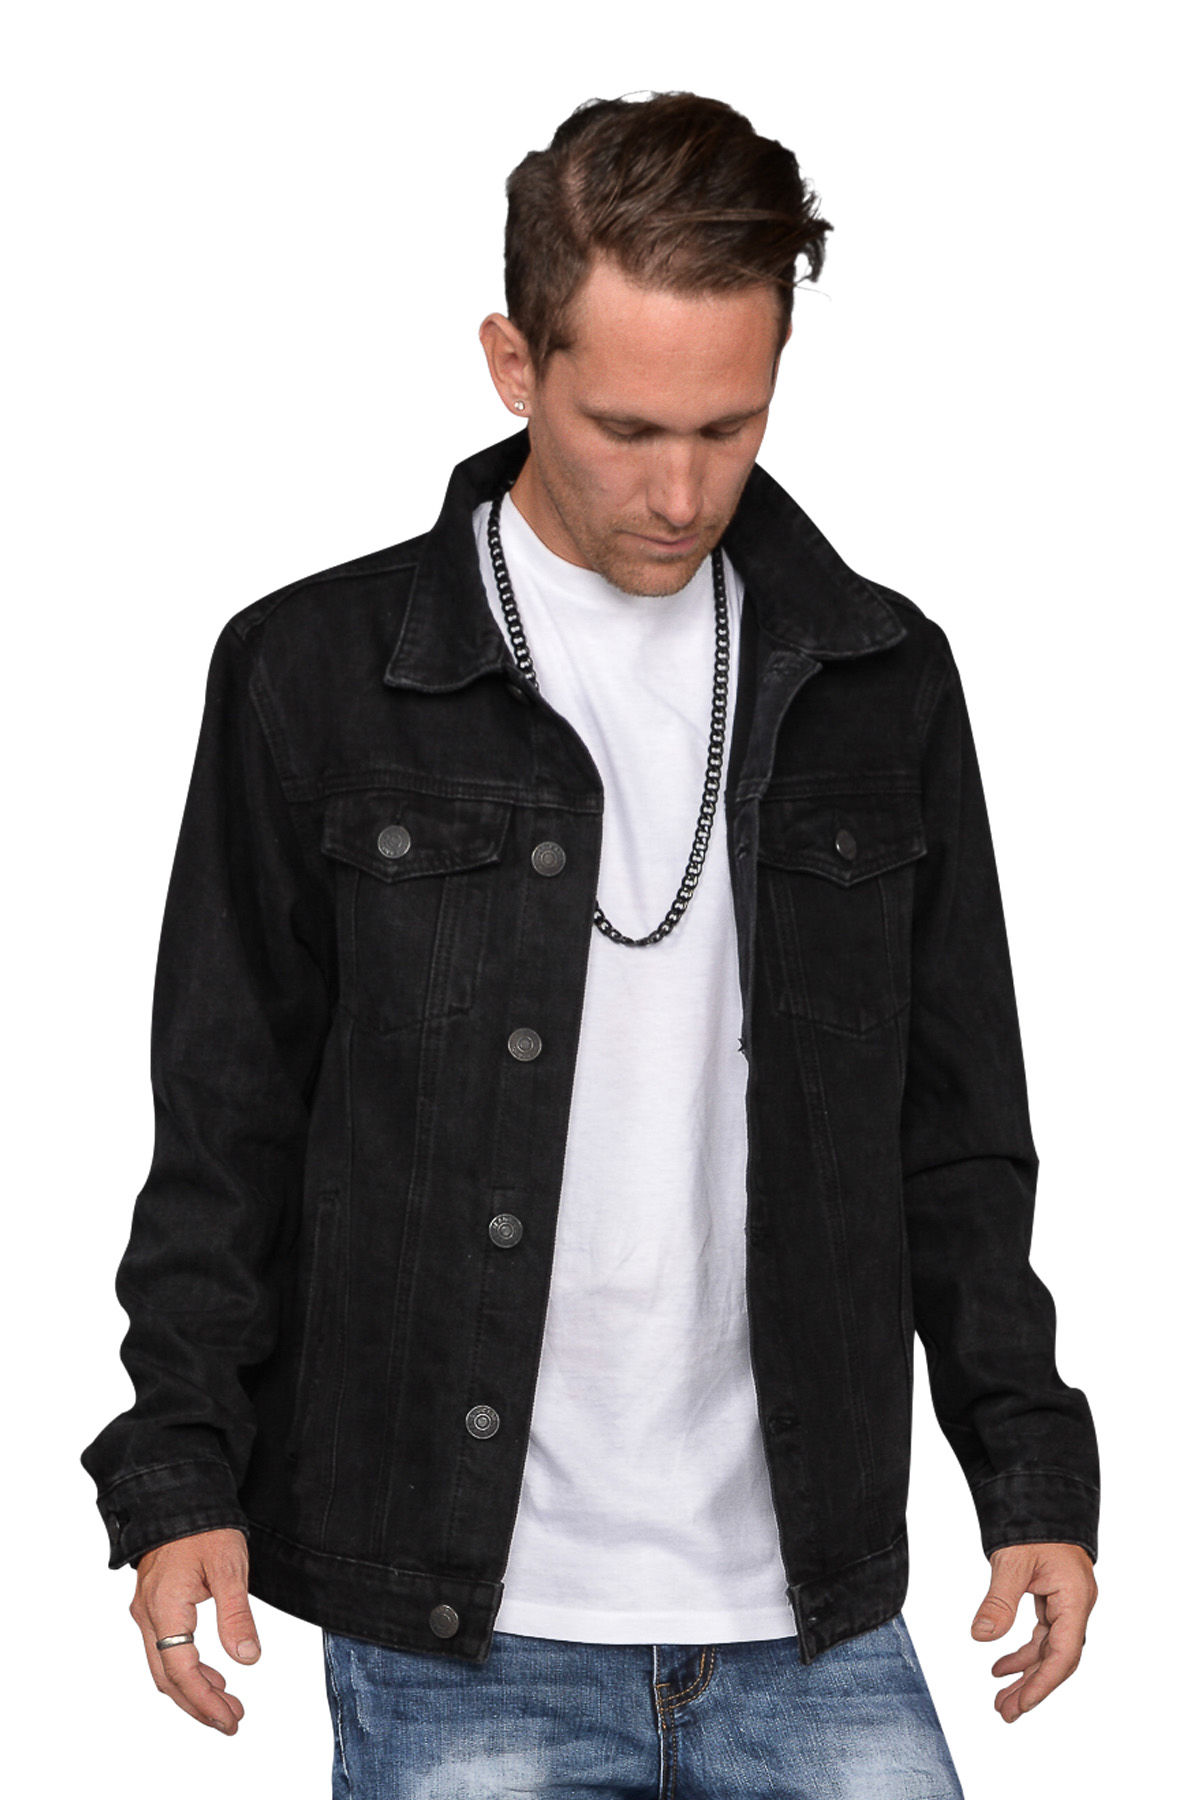 Image of The Senna Black Denim Jacket in Black